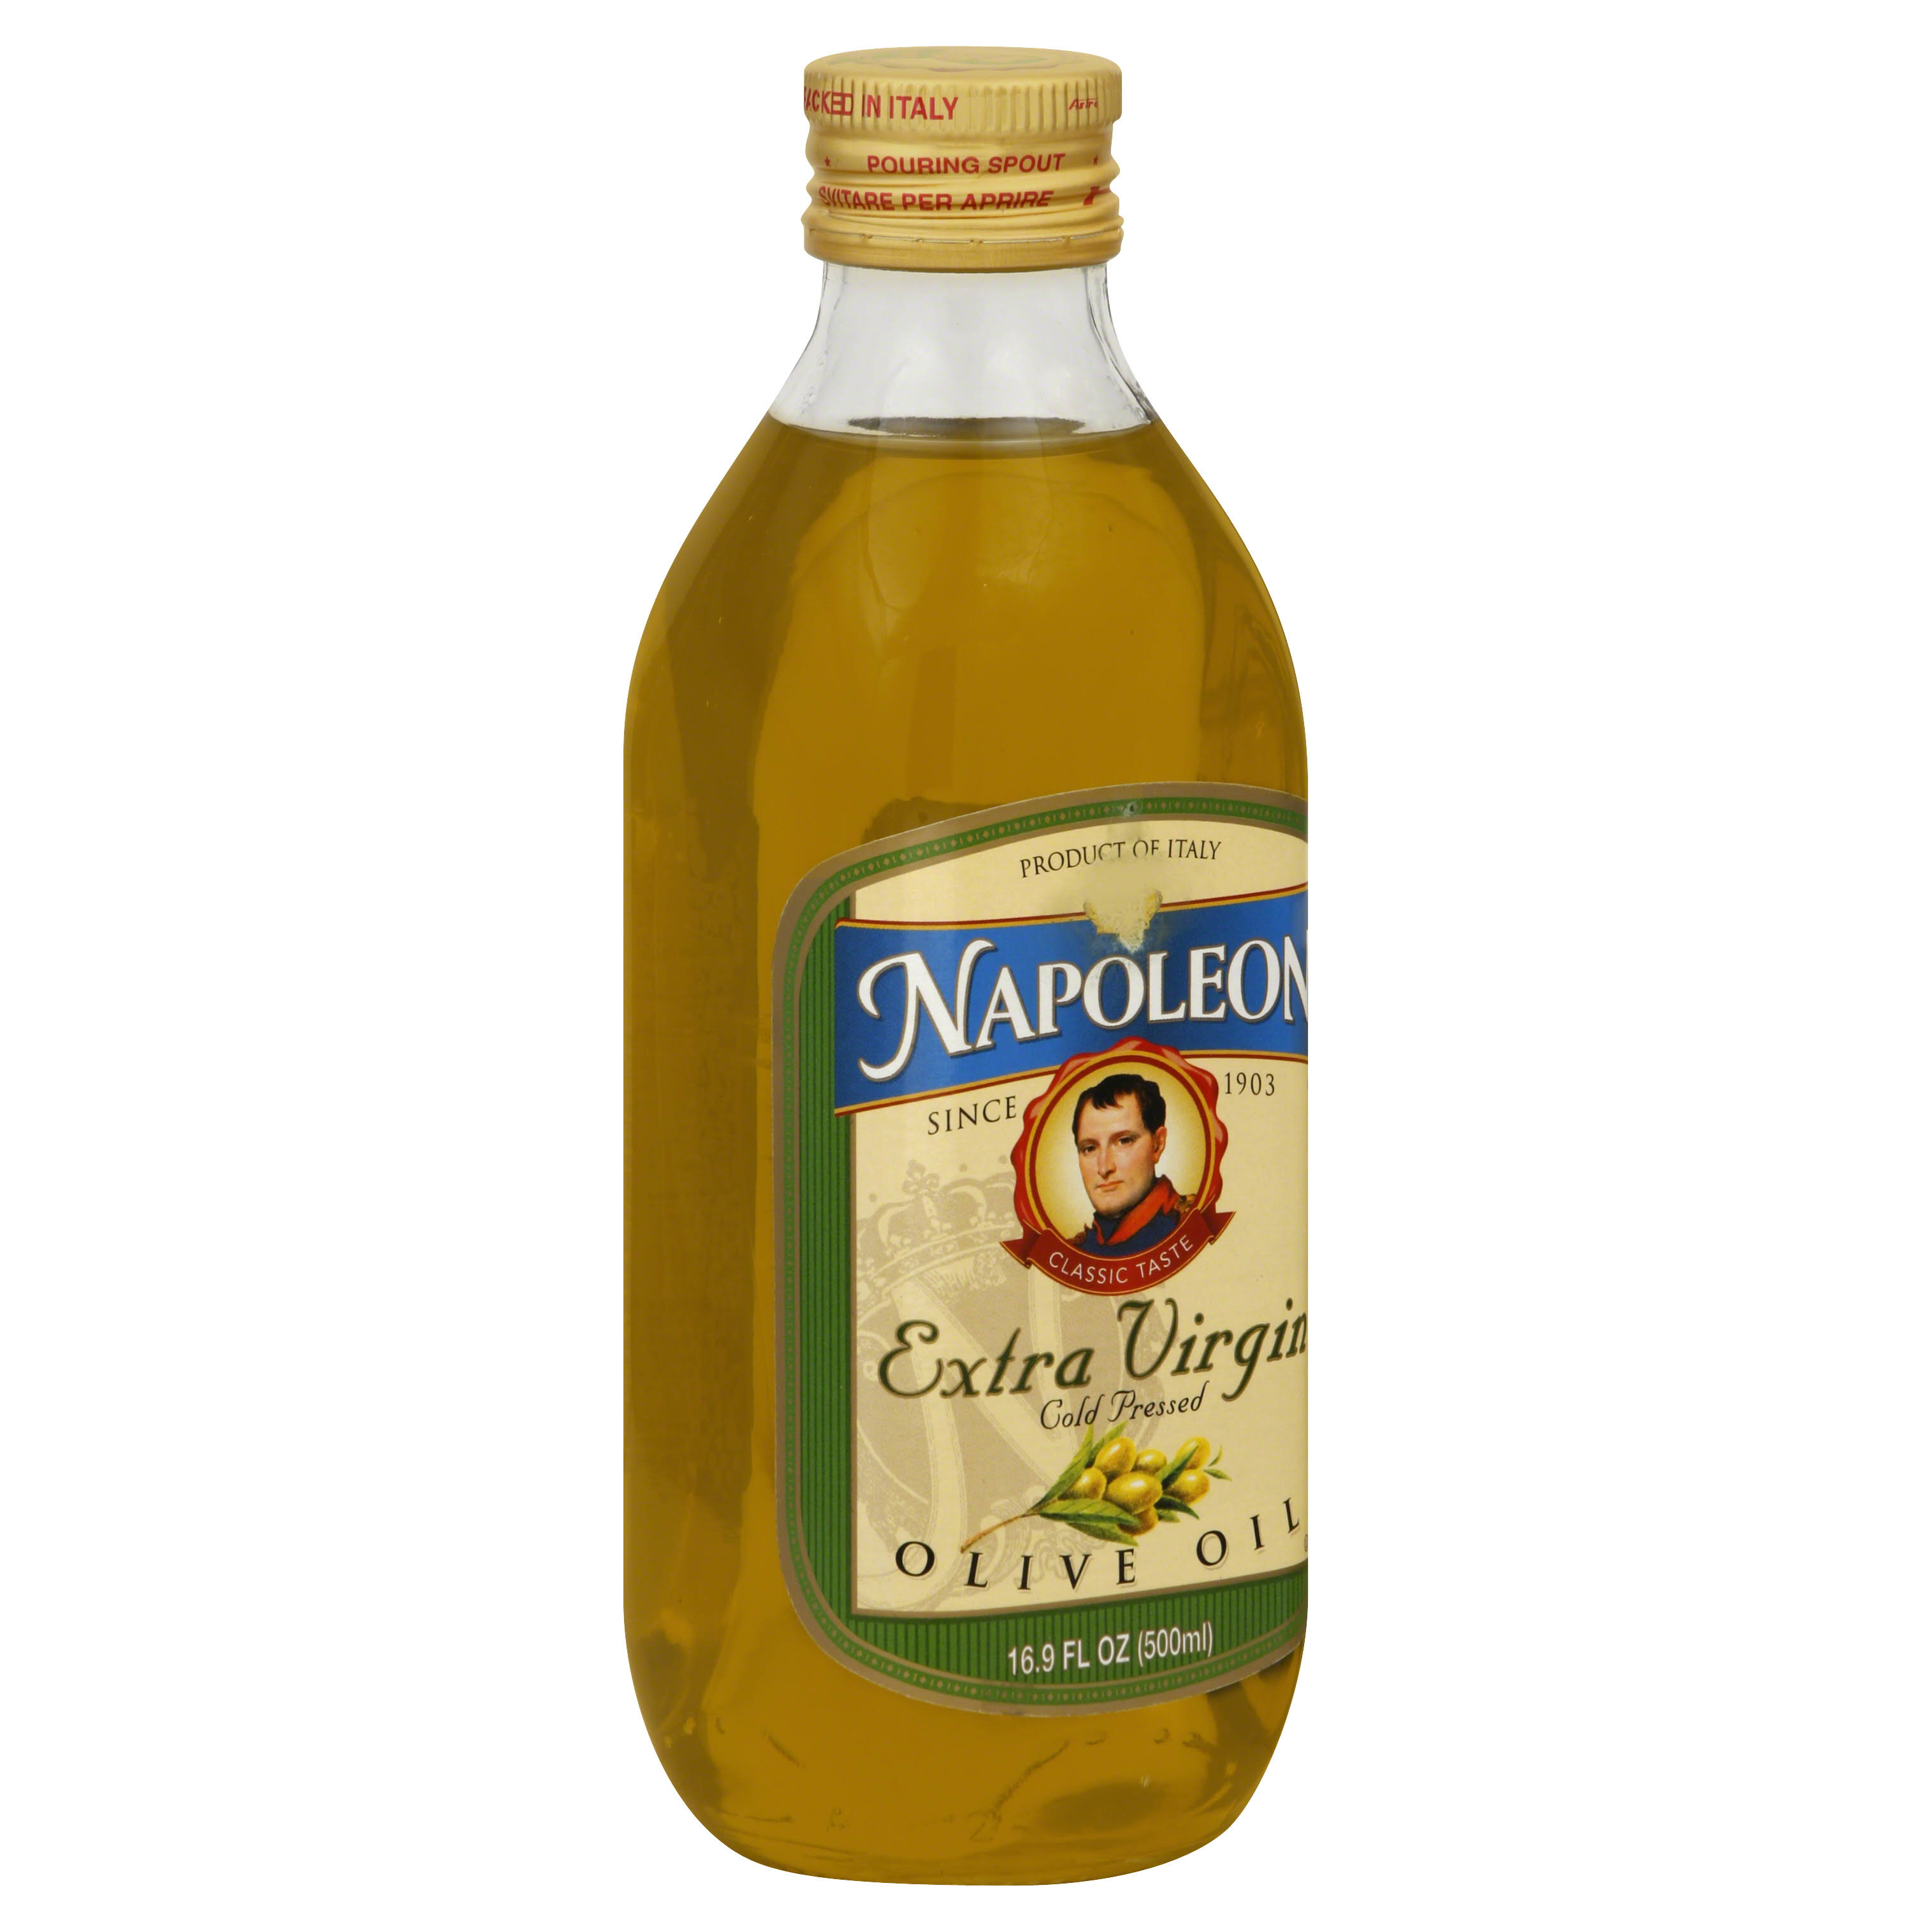 Napoleon Extra Virgin Olive Oil - 16.9oz